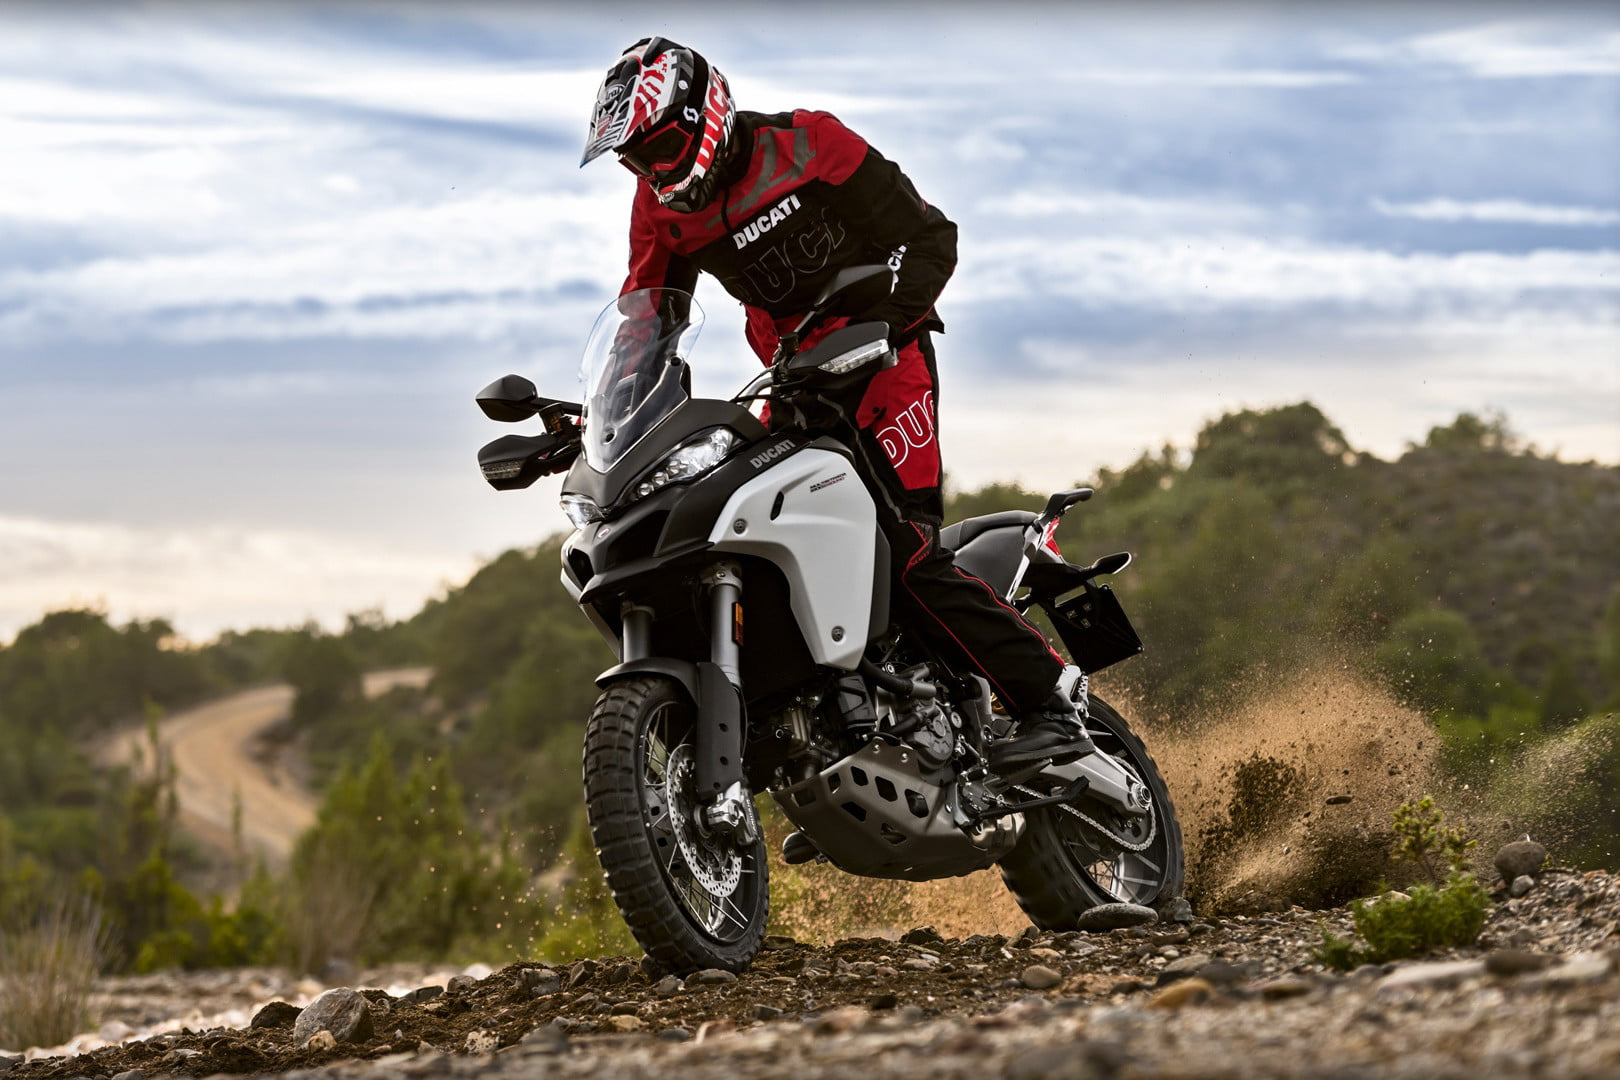 Enduro R Specs >> The Best Dual-Sport Motorcycles   Pictures, Specs, Performance   Digital Trends